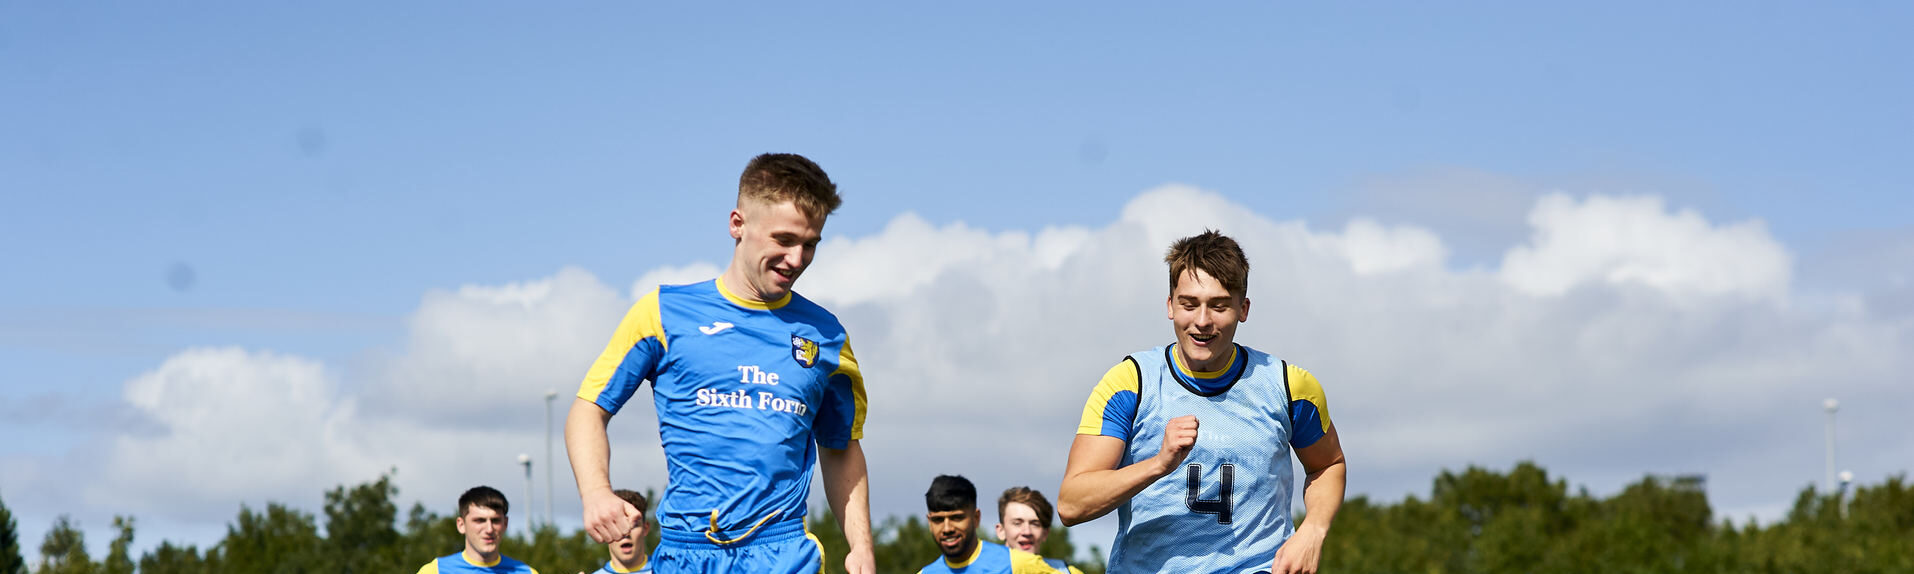 Sixth Form students playing football